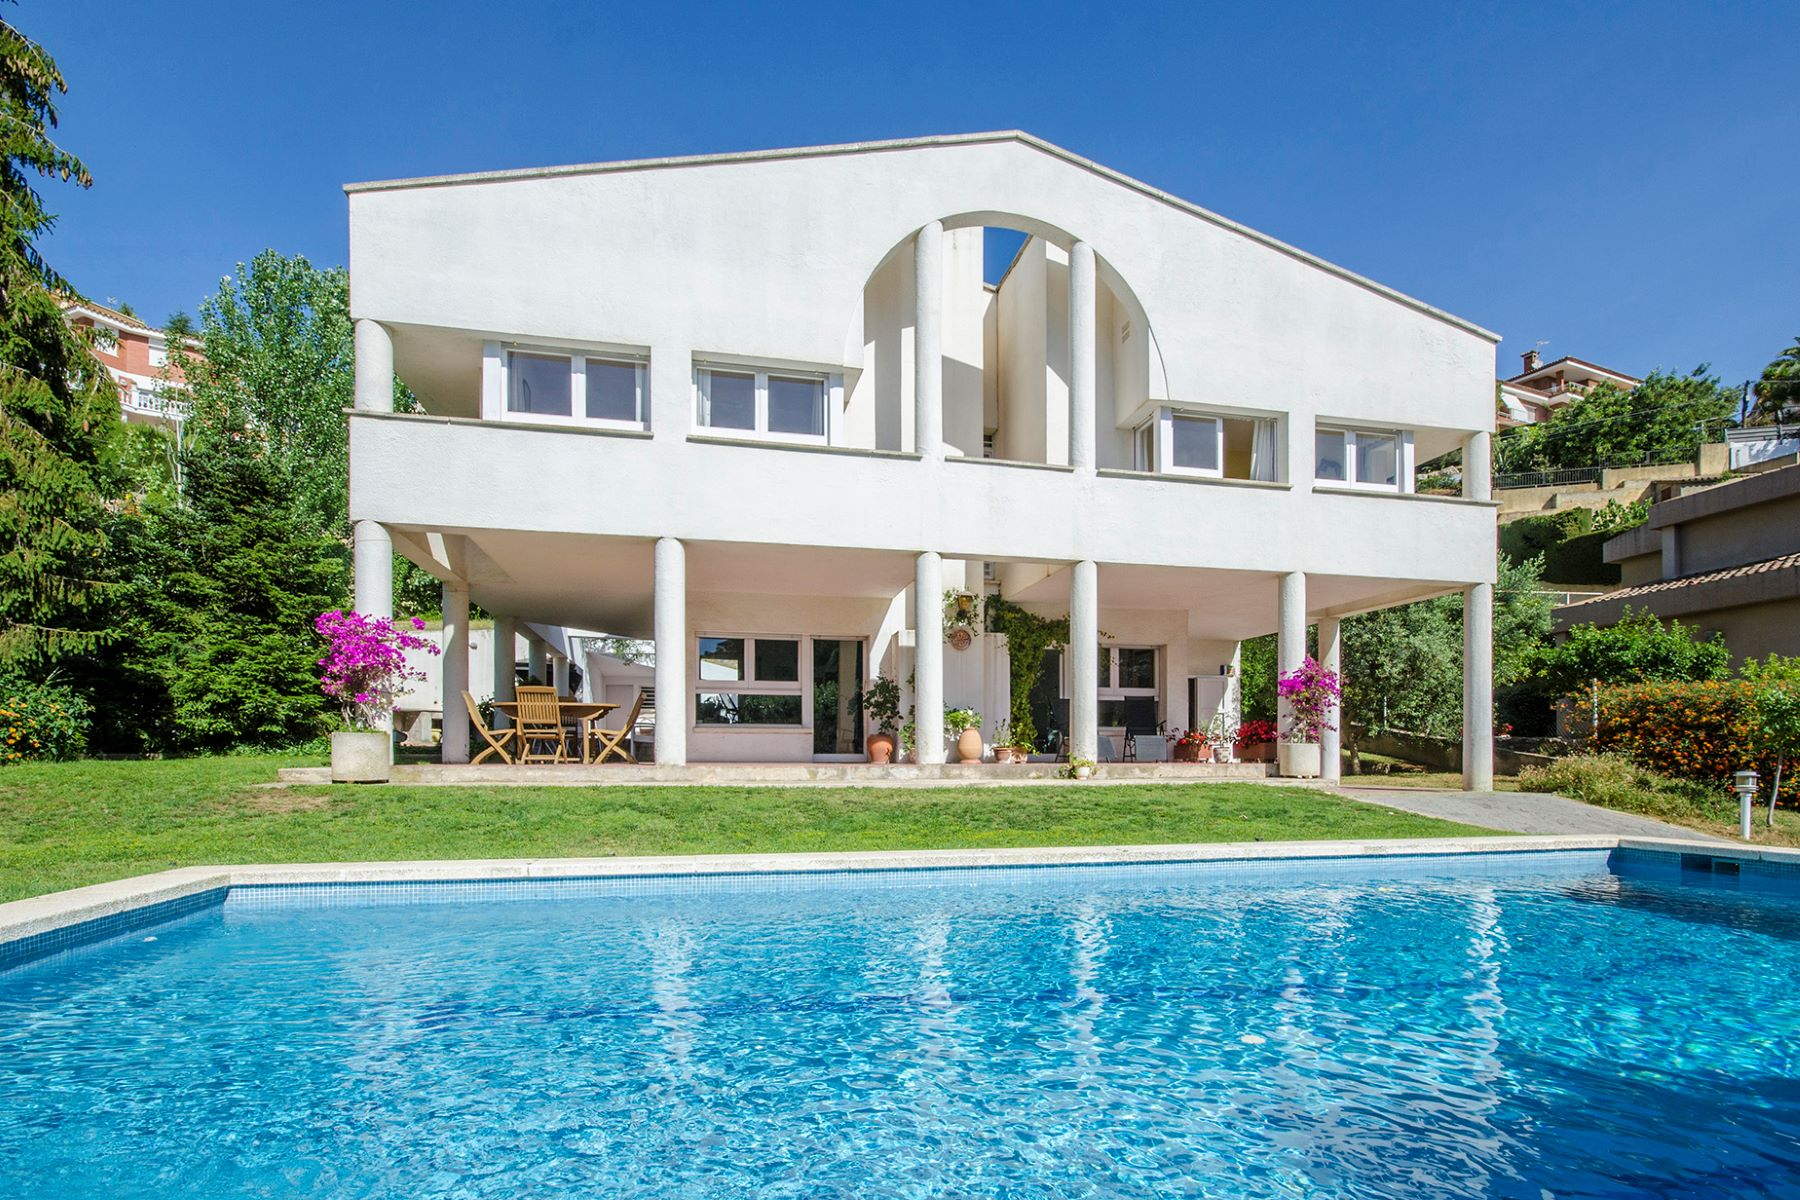 Single Family Home for Sale at Family-type house with a pool in Alella Alella, Barcelona, 08328 Spain